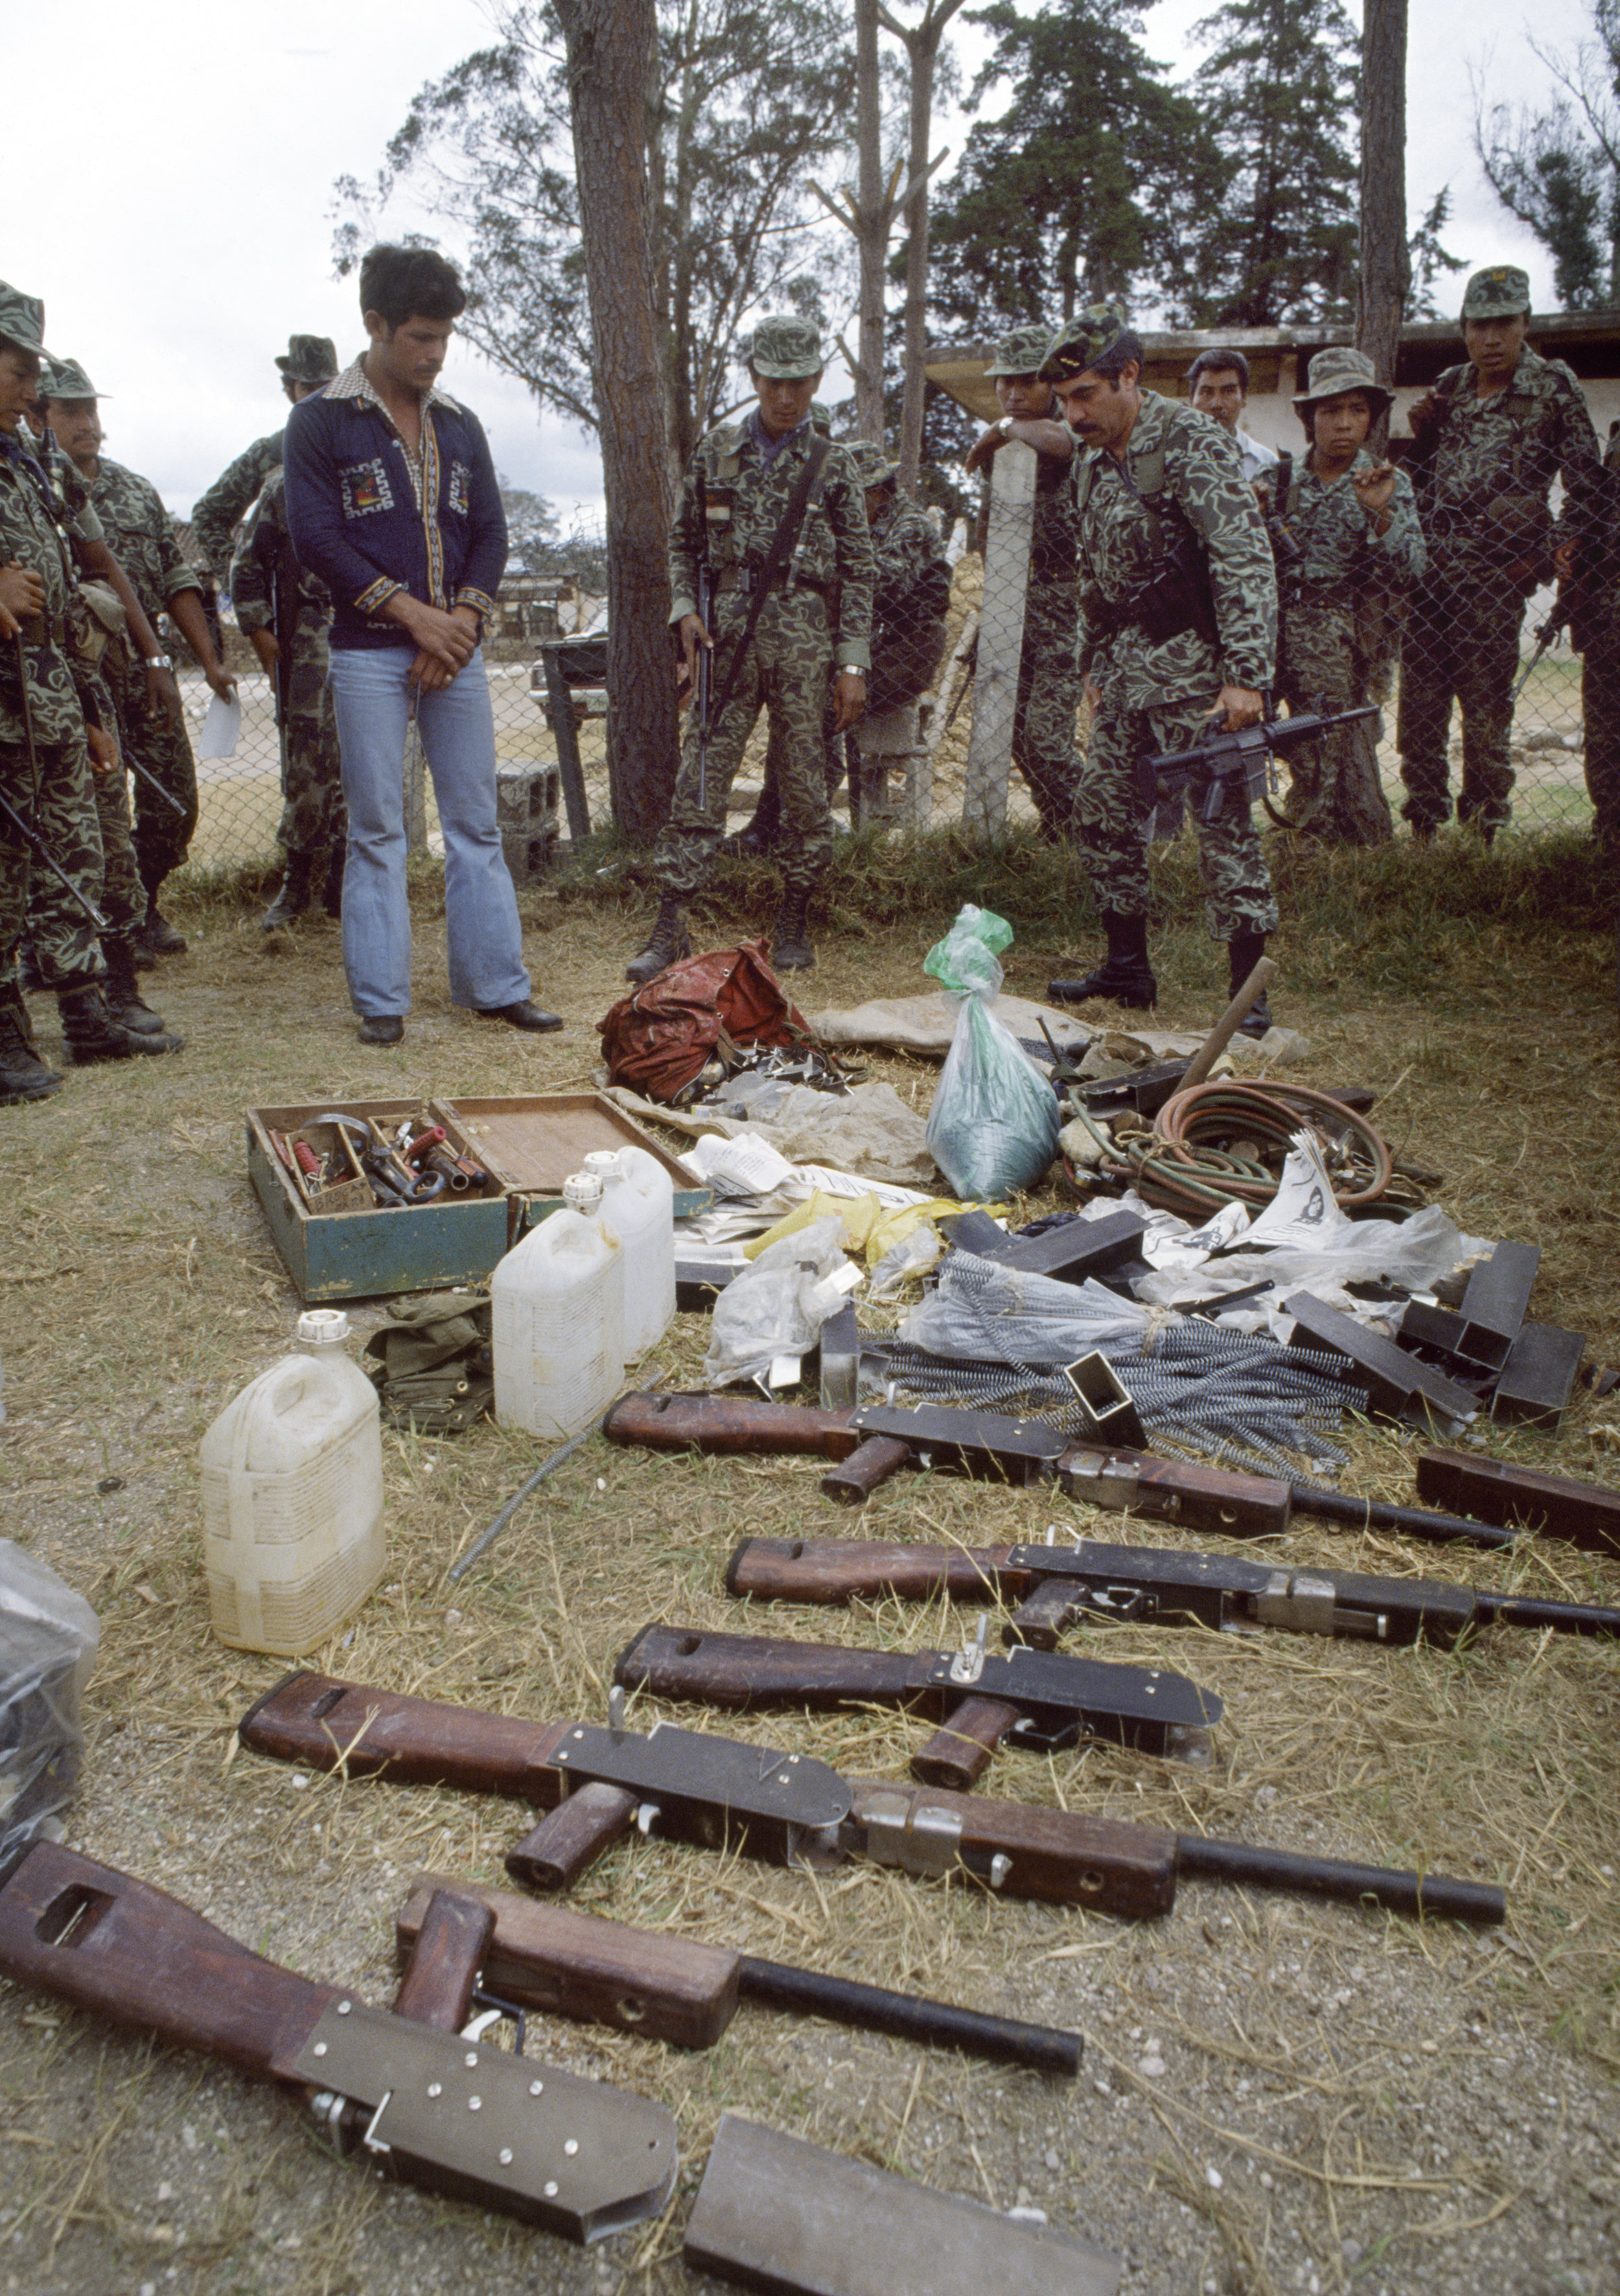 Guatemalan army Colonel Lima Estrada looks over captured weapons and explosives found in a Guerrilla Army of the Poor, EGP, safe house outside of Santa Cruz del Quiché, Guatemala, February 1, 1982. Col. Lima Estrada was the commander of the El Quiché department army garrison.